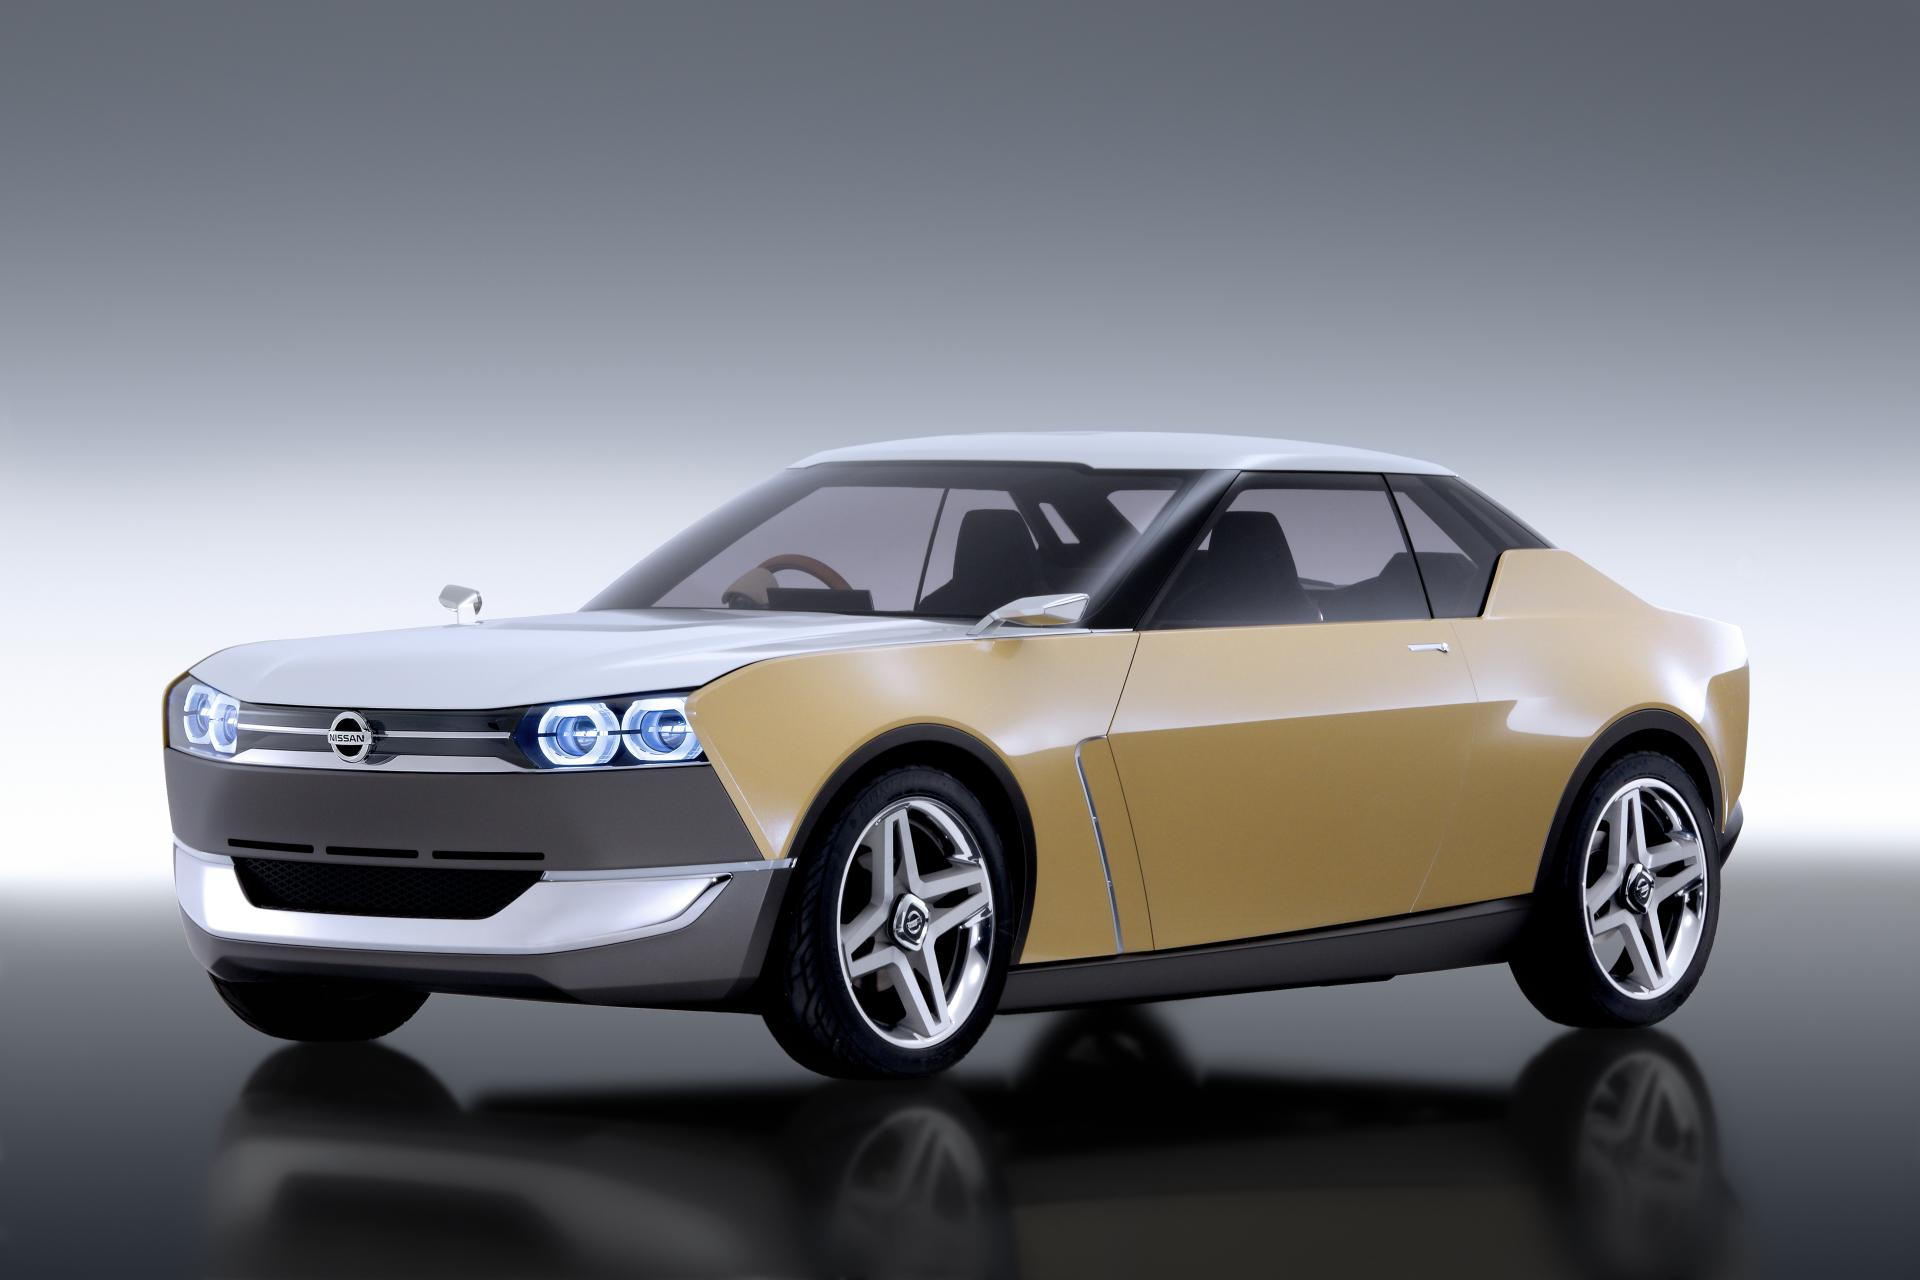 2013 Nissan IDx Freeflow Concept News and Information, Research, and ...